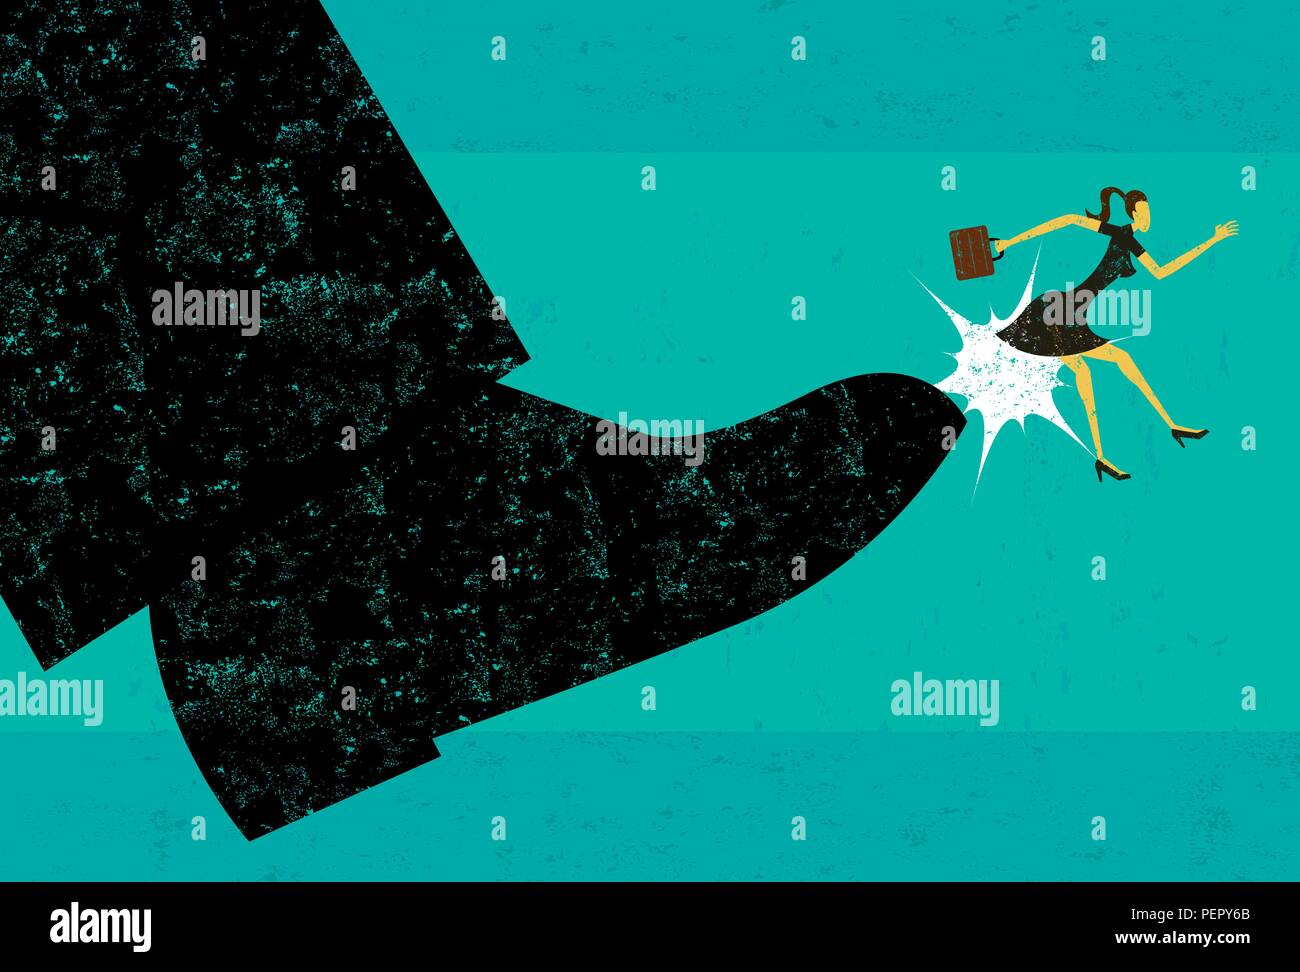 Getting Fired. A businesswoman getting booted from her job. - Stock Vector